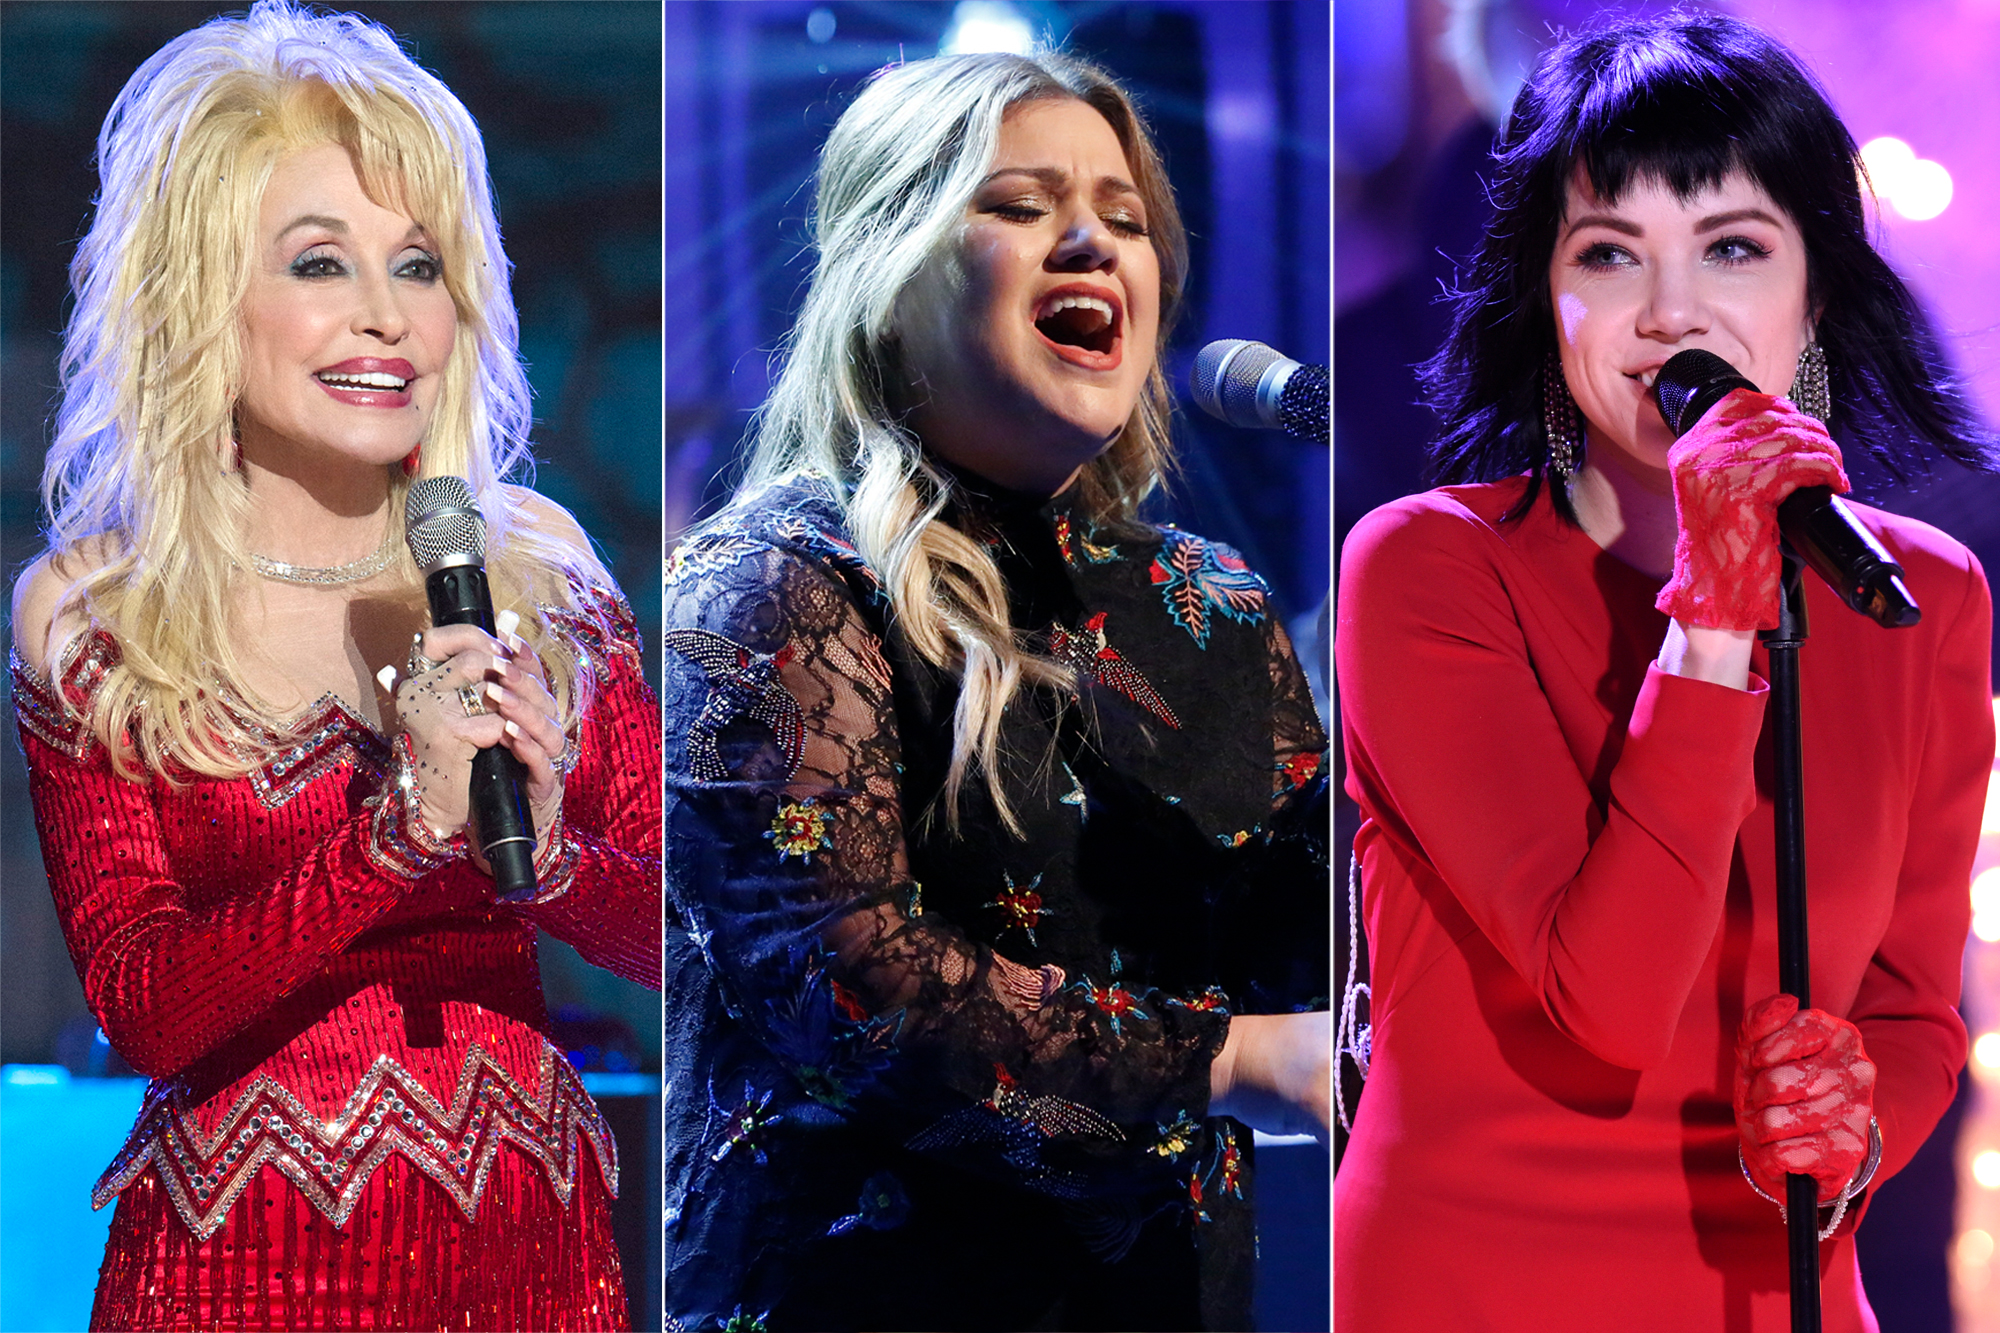 Dolly Parton, Kelly Clarkson, Carly Rae Jepsen